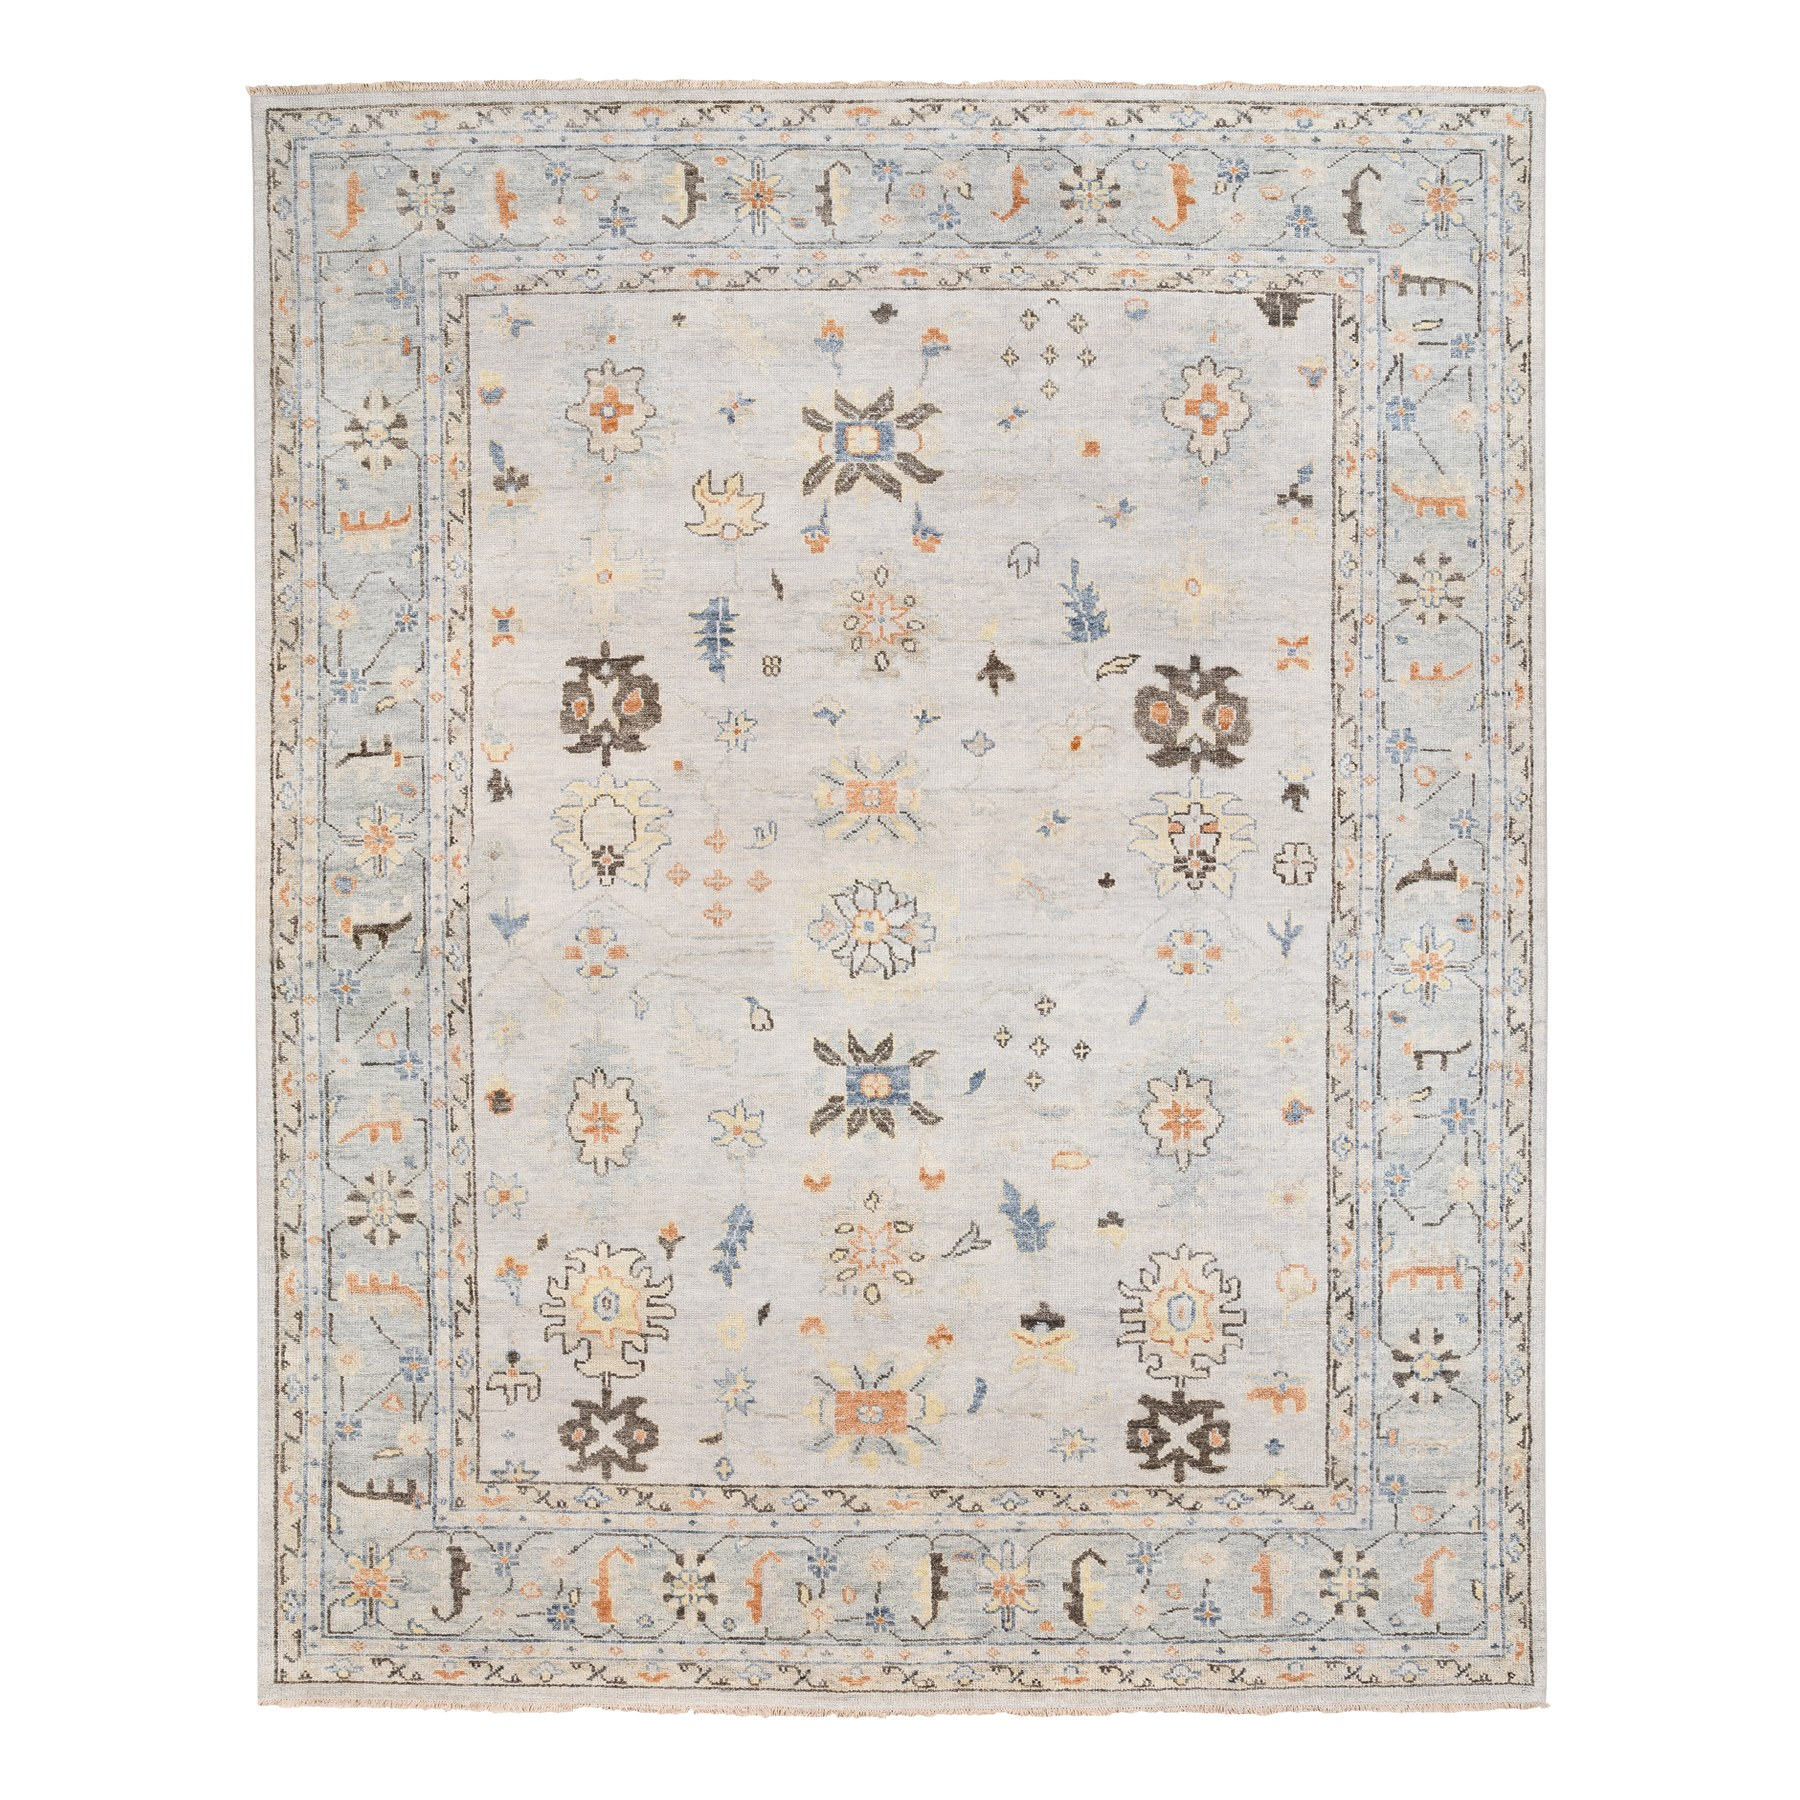 12'x15' Oversized Supple Collection Pure Wool Ivory Oushak Design Hand Knotted Oriental Rug